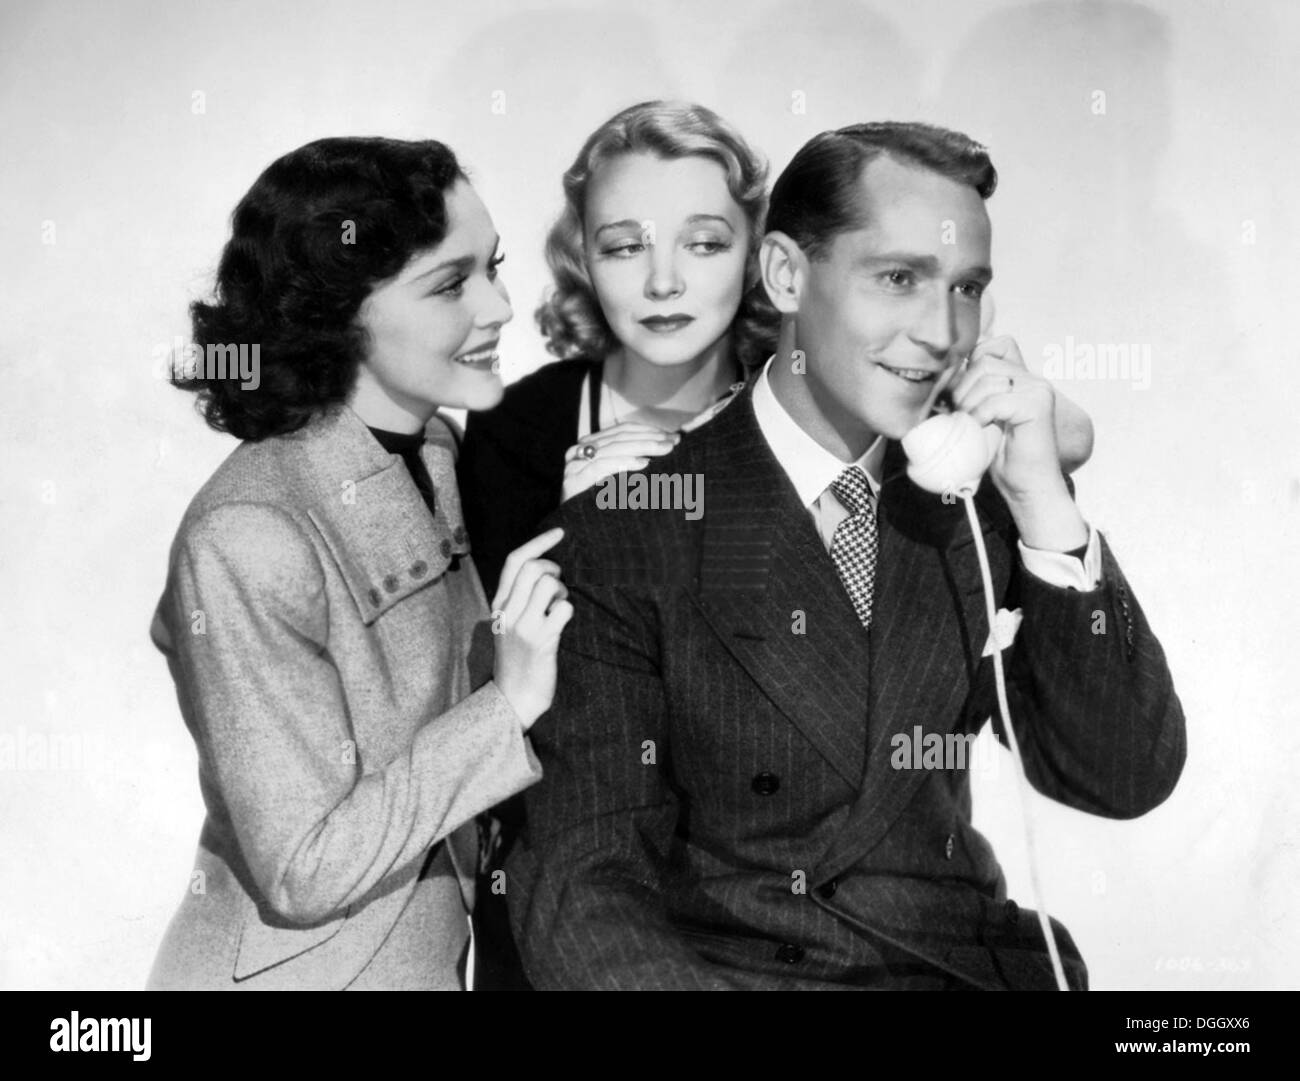 BETWEEN TWO WOMEN 1937 MGM film with from left: Maureen O'Sullivan, Virginia Bruce, Franchot Tone - Stock Image